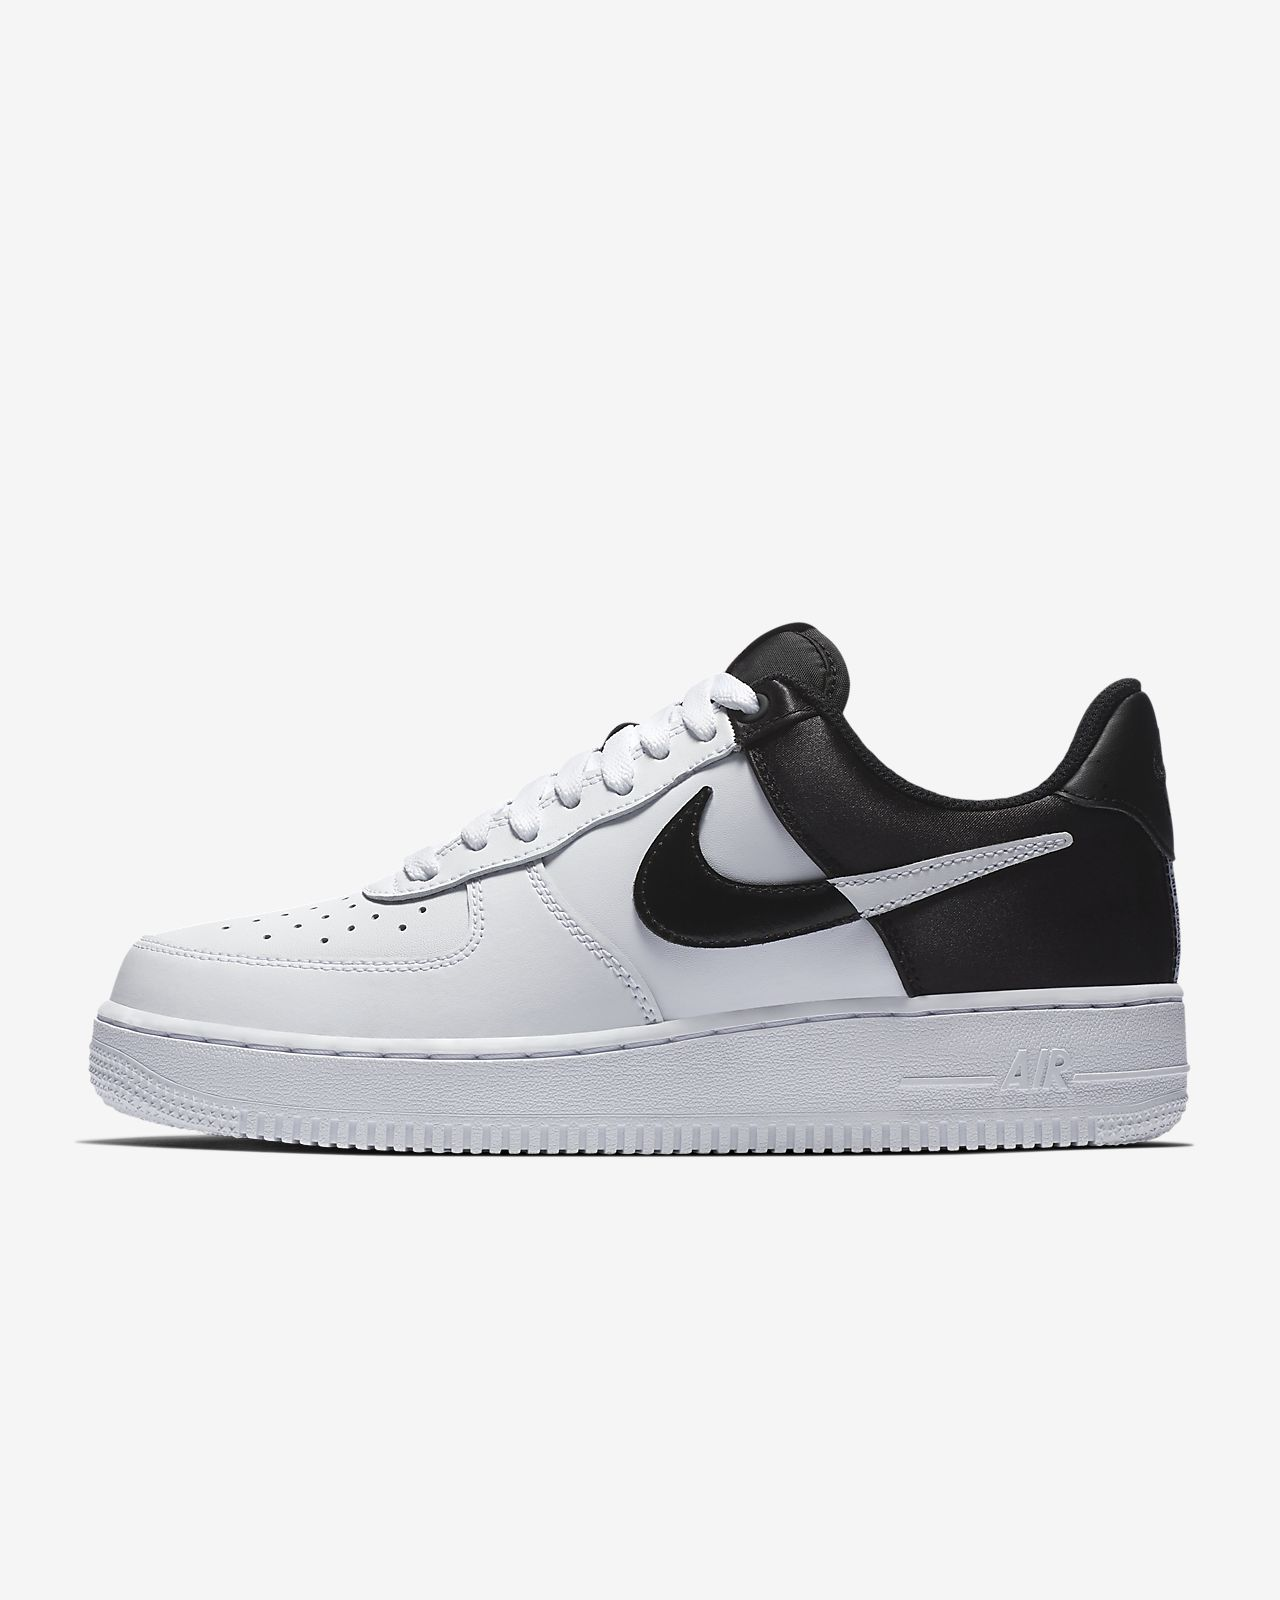 air force 1 ragazzo bianche